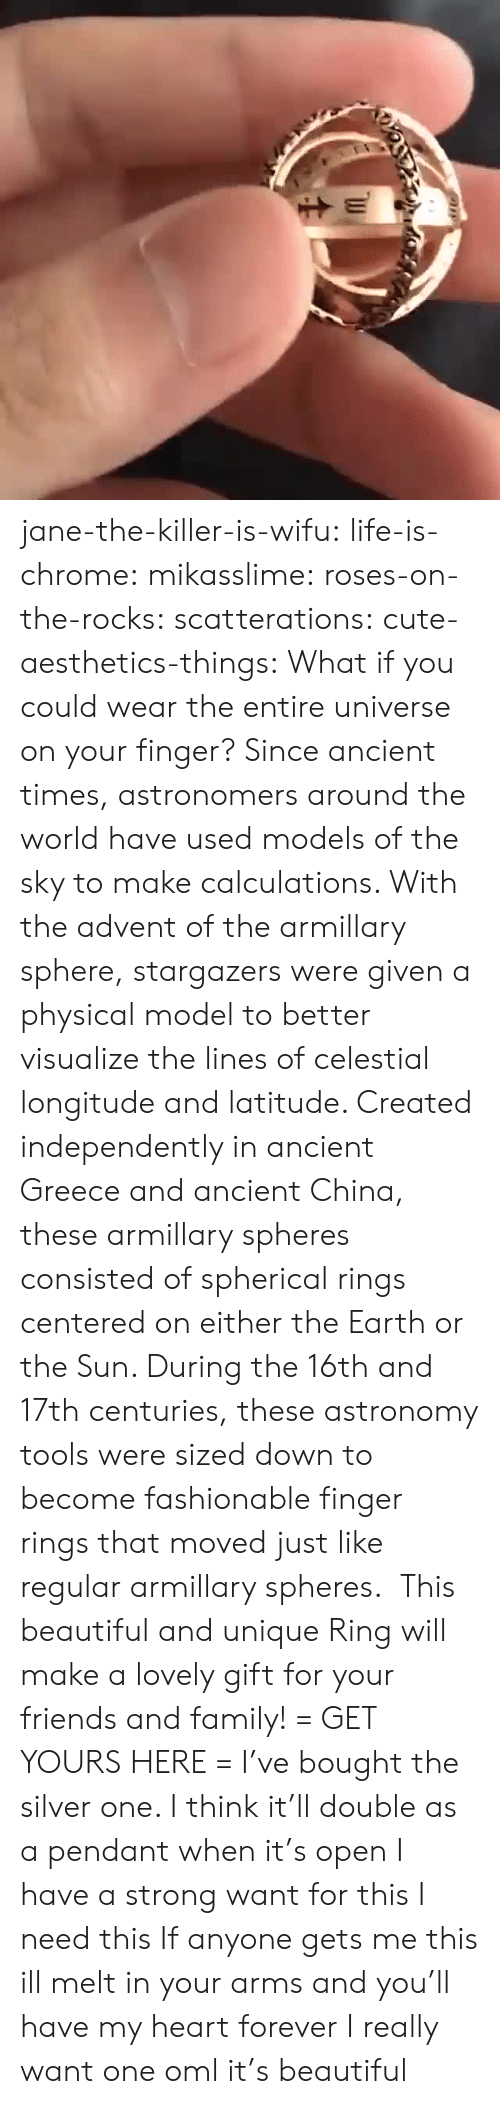 Beautiful, Chrome, and Cute: jane-the-killer-is-wifu:  life-is-chrome:  mikasslime:  roses-on-the-rocks:  scatterations:  cute-aesthetics-things: What if you could wear the entire universe on your finger? Since ancient times, astronomers around the world have used models of the sky to make calculations. With the advent of the armillary sphere, stargazers were given a physical model to better visualize the lines of celestial longitude and latitude. Created independently in ancient Greece and ancient China, these armillary spheres consisted of spherical rings centered on either the Earth or the Sun. During the 16th and 17th centuries, these astronomy tools were sized down to become fashionable finger rings that moved just like regular armillary spheres.  This beautiful and unique Ring will make a lovely gift for your friends and family! = GET YOURS HERE =   I've bought the silver one. I think it'll double as a pendant when it's open   I have a strong want for this   I need this  If anyone gets me this ill melt in your arms and you'll have my heart forever  I really want one oml it's beautiful